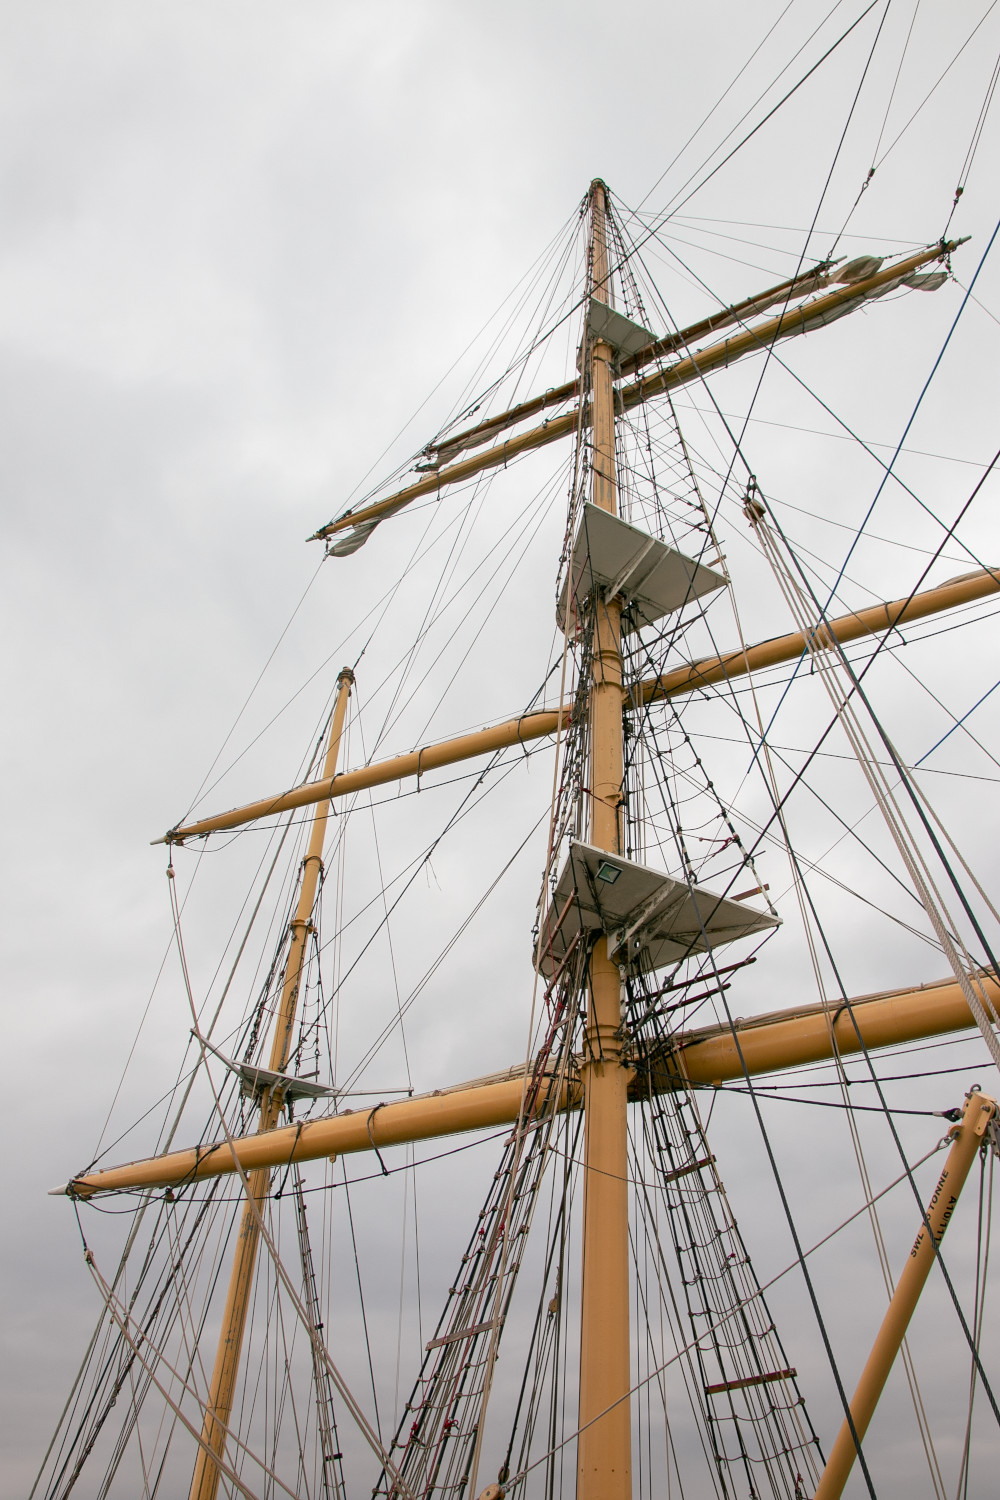 3 masts and rigging